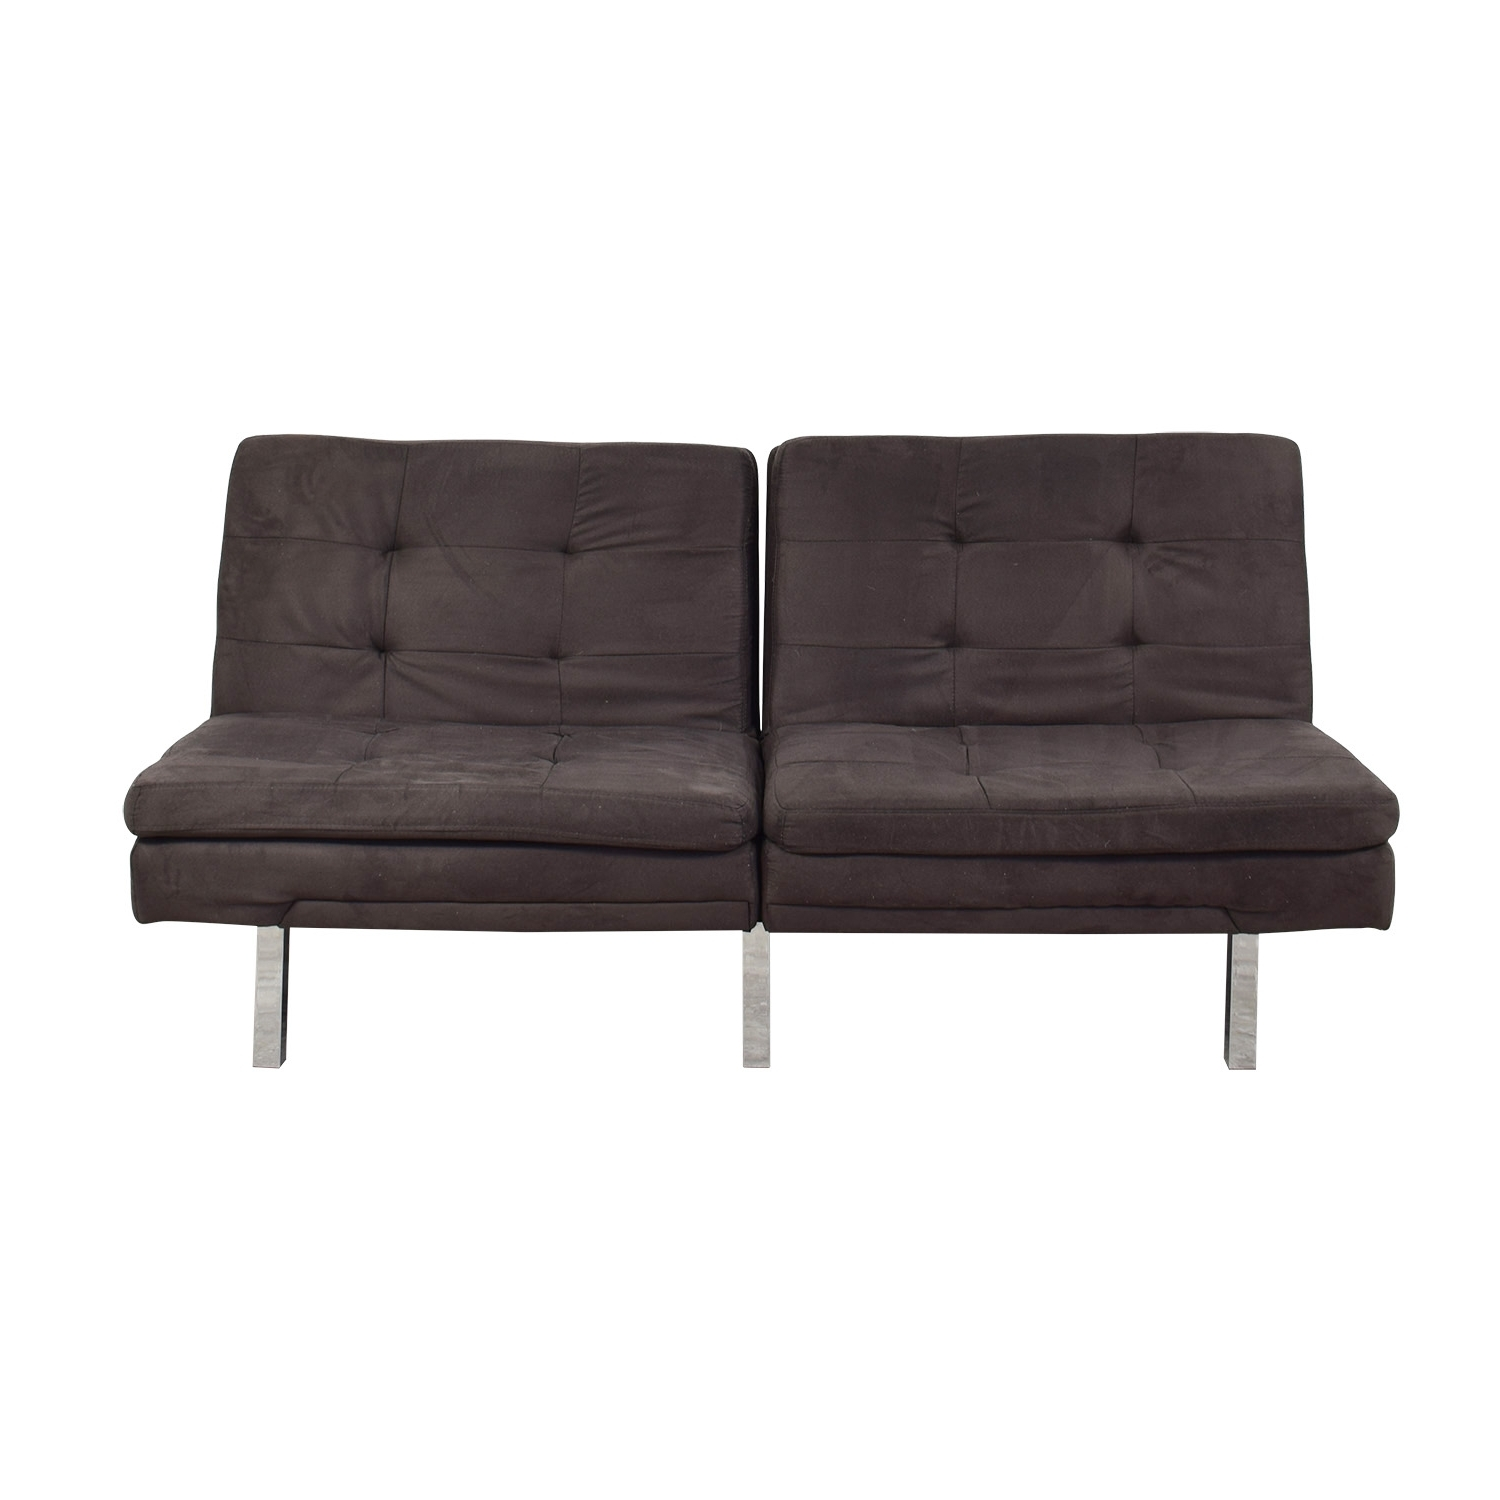 [%55% Off – Charcoal Convertible Sofa / Sofas Intended For Popular Convertible Sofas|Convertible Sofas Regarding Newest 55% Off – Charcoal Convertible Sofa / Sofas|Best And Newest Convertible Sofas With 55% Off – Charcoal Convertible Sofa / Sofas|Well Liked 55% Off – Charcoal Convertible Sofa / Sofas Regarding Convertible Sofas%] (View 1 of 20)